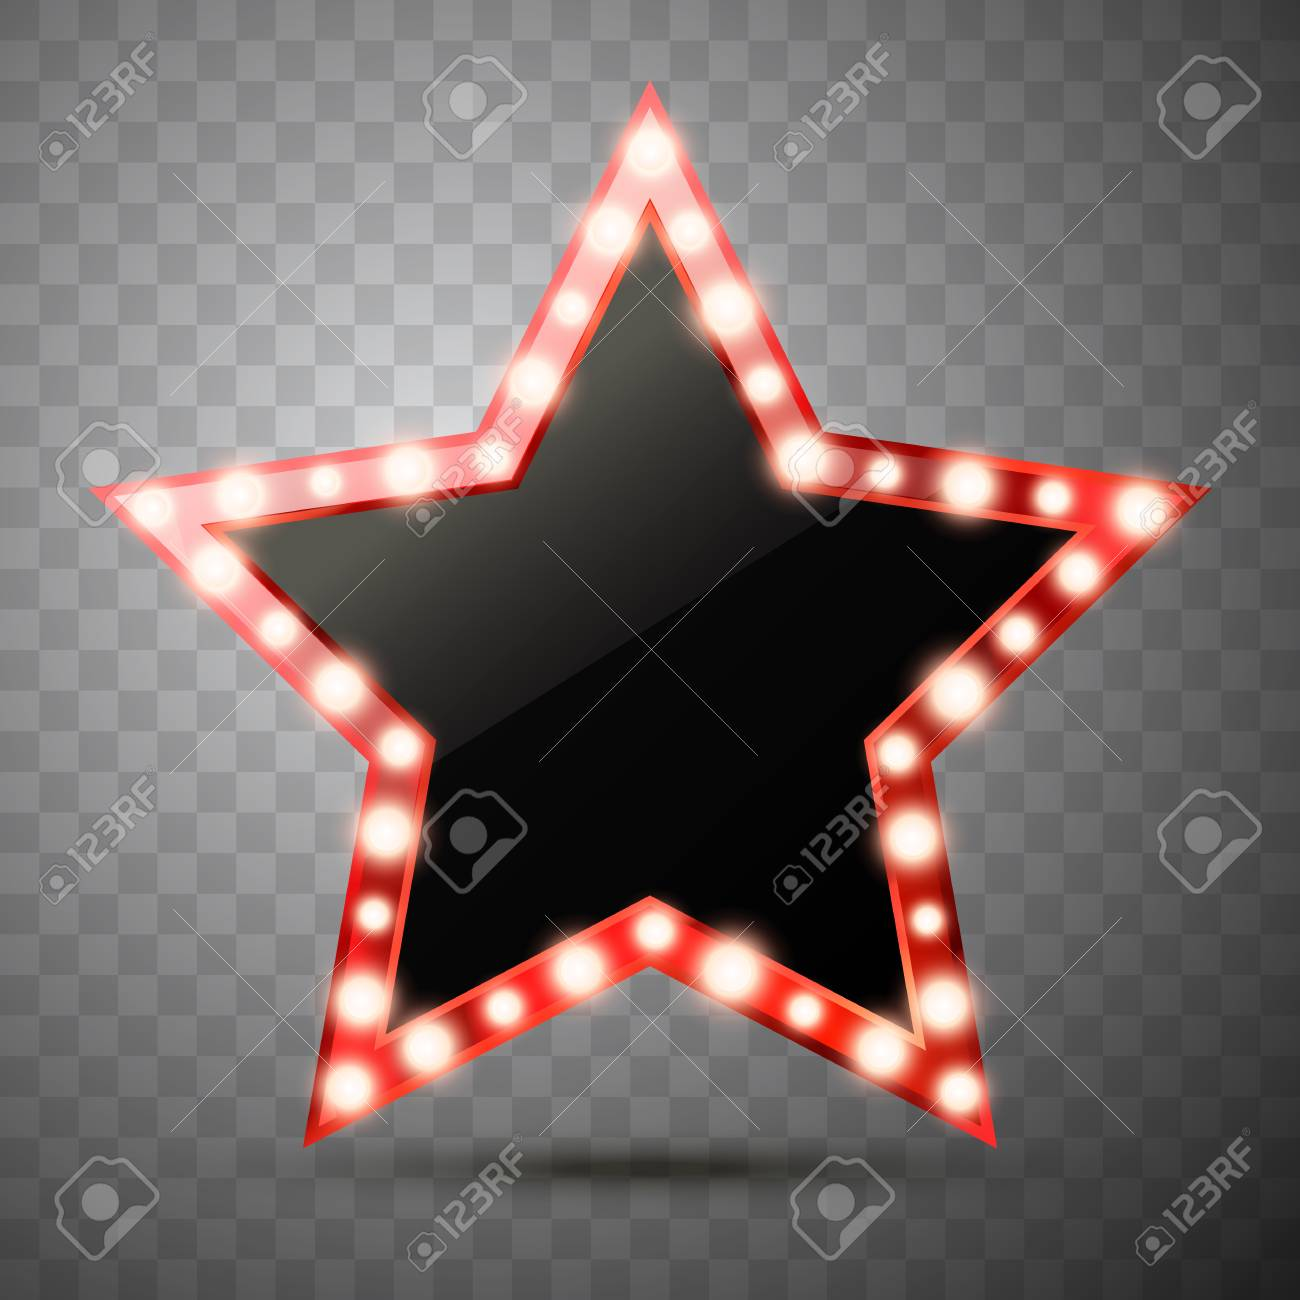 Star with lights isolated. Luxury vector illustration of golden star with shine light bulbs. - 116217704